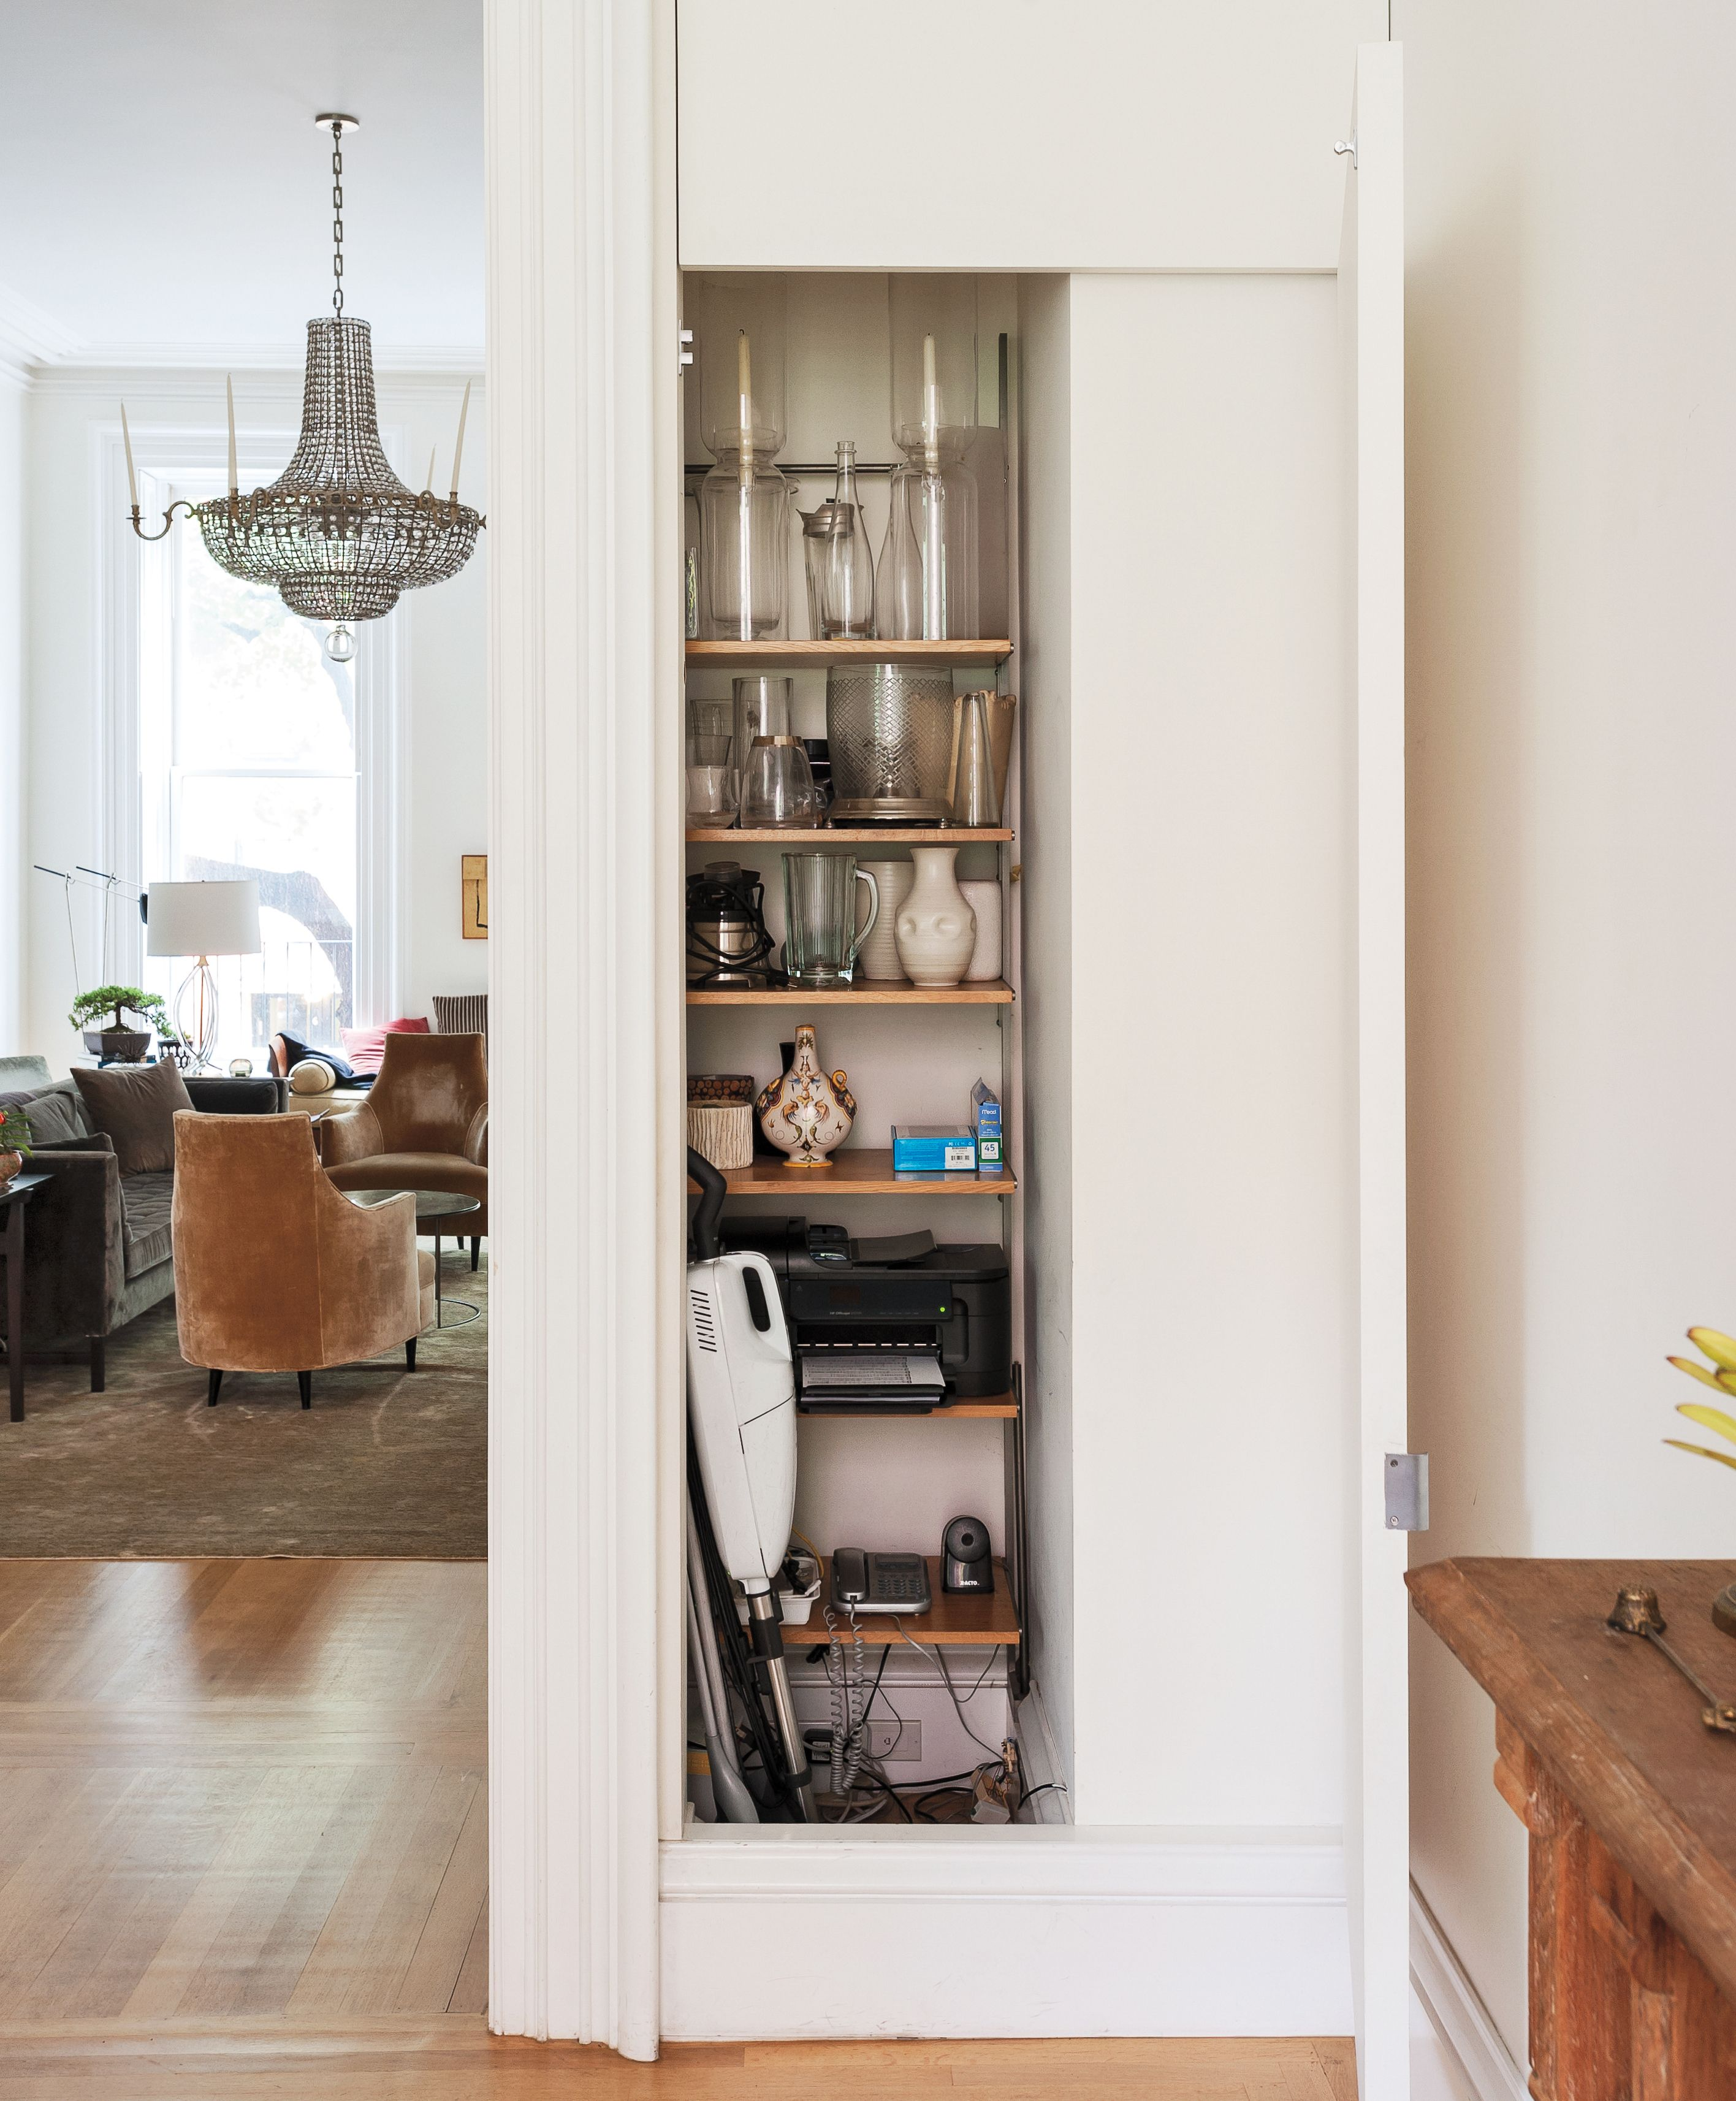 Wonderful Francesca Connolly Pocket Closet Storage In Her Brooklyn Dining Room